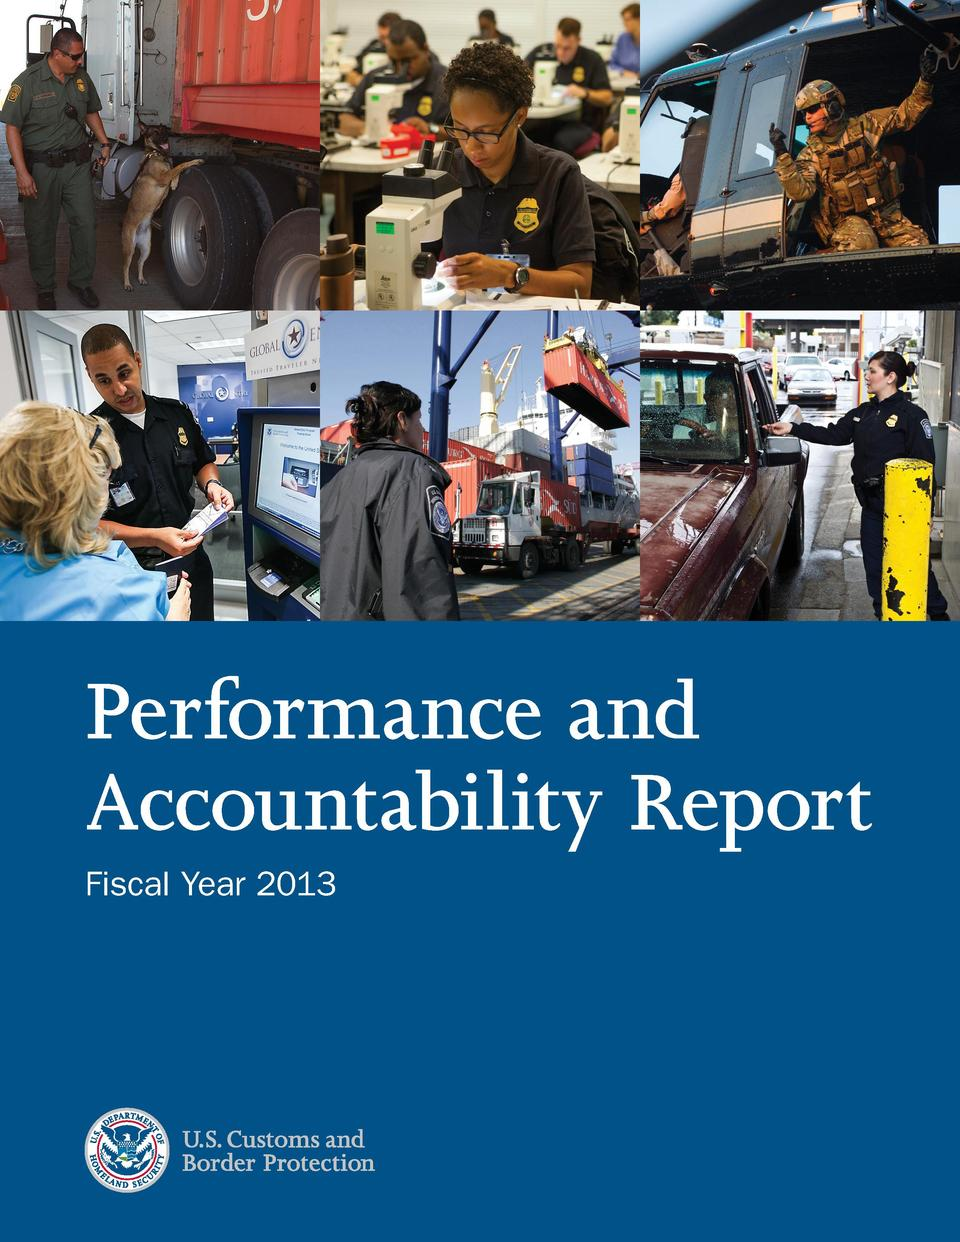 Performance and Accountability Report Fiscal Year 2013